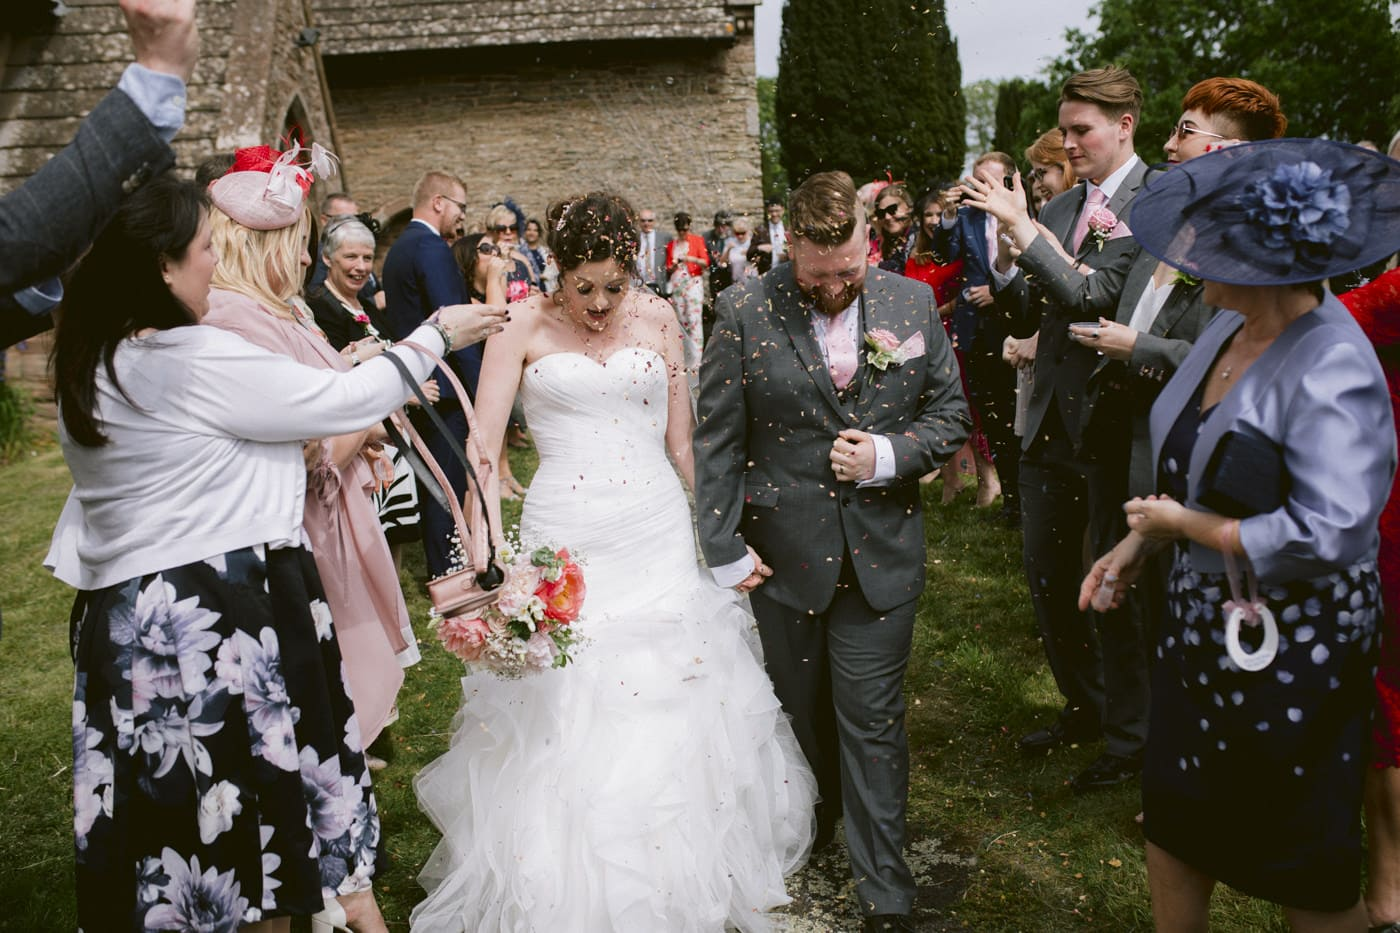 Bride and Groom Walking, Guests Celebrations outside Portrait